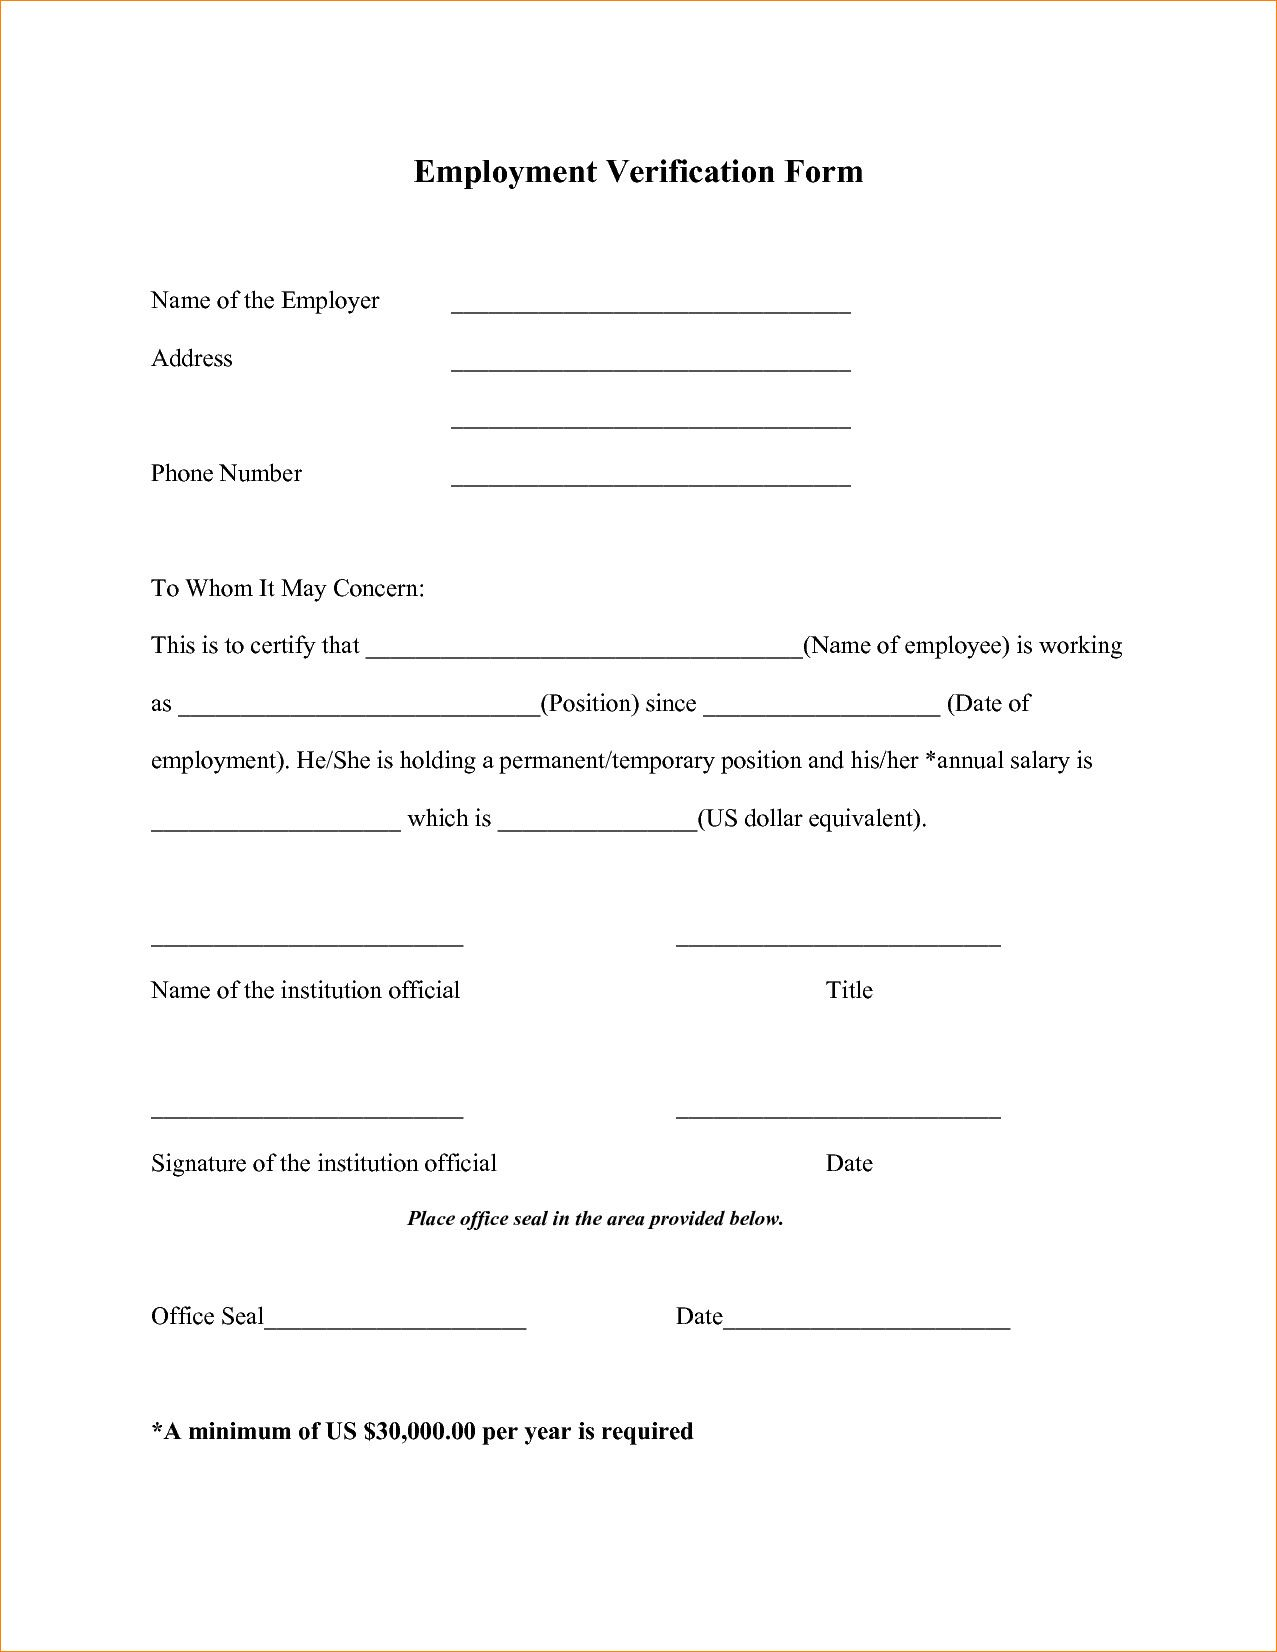 Free Employee Verification Form Template New 4 Employment Verification Form Template Employment Form Simple Cover Letter Template Cover Letter Template Free Free employee verification form template